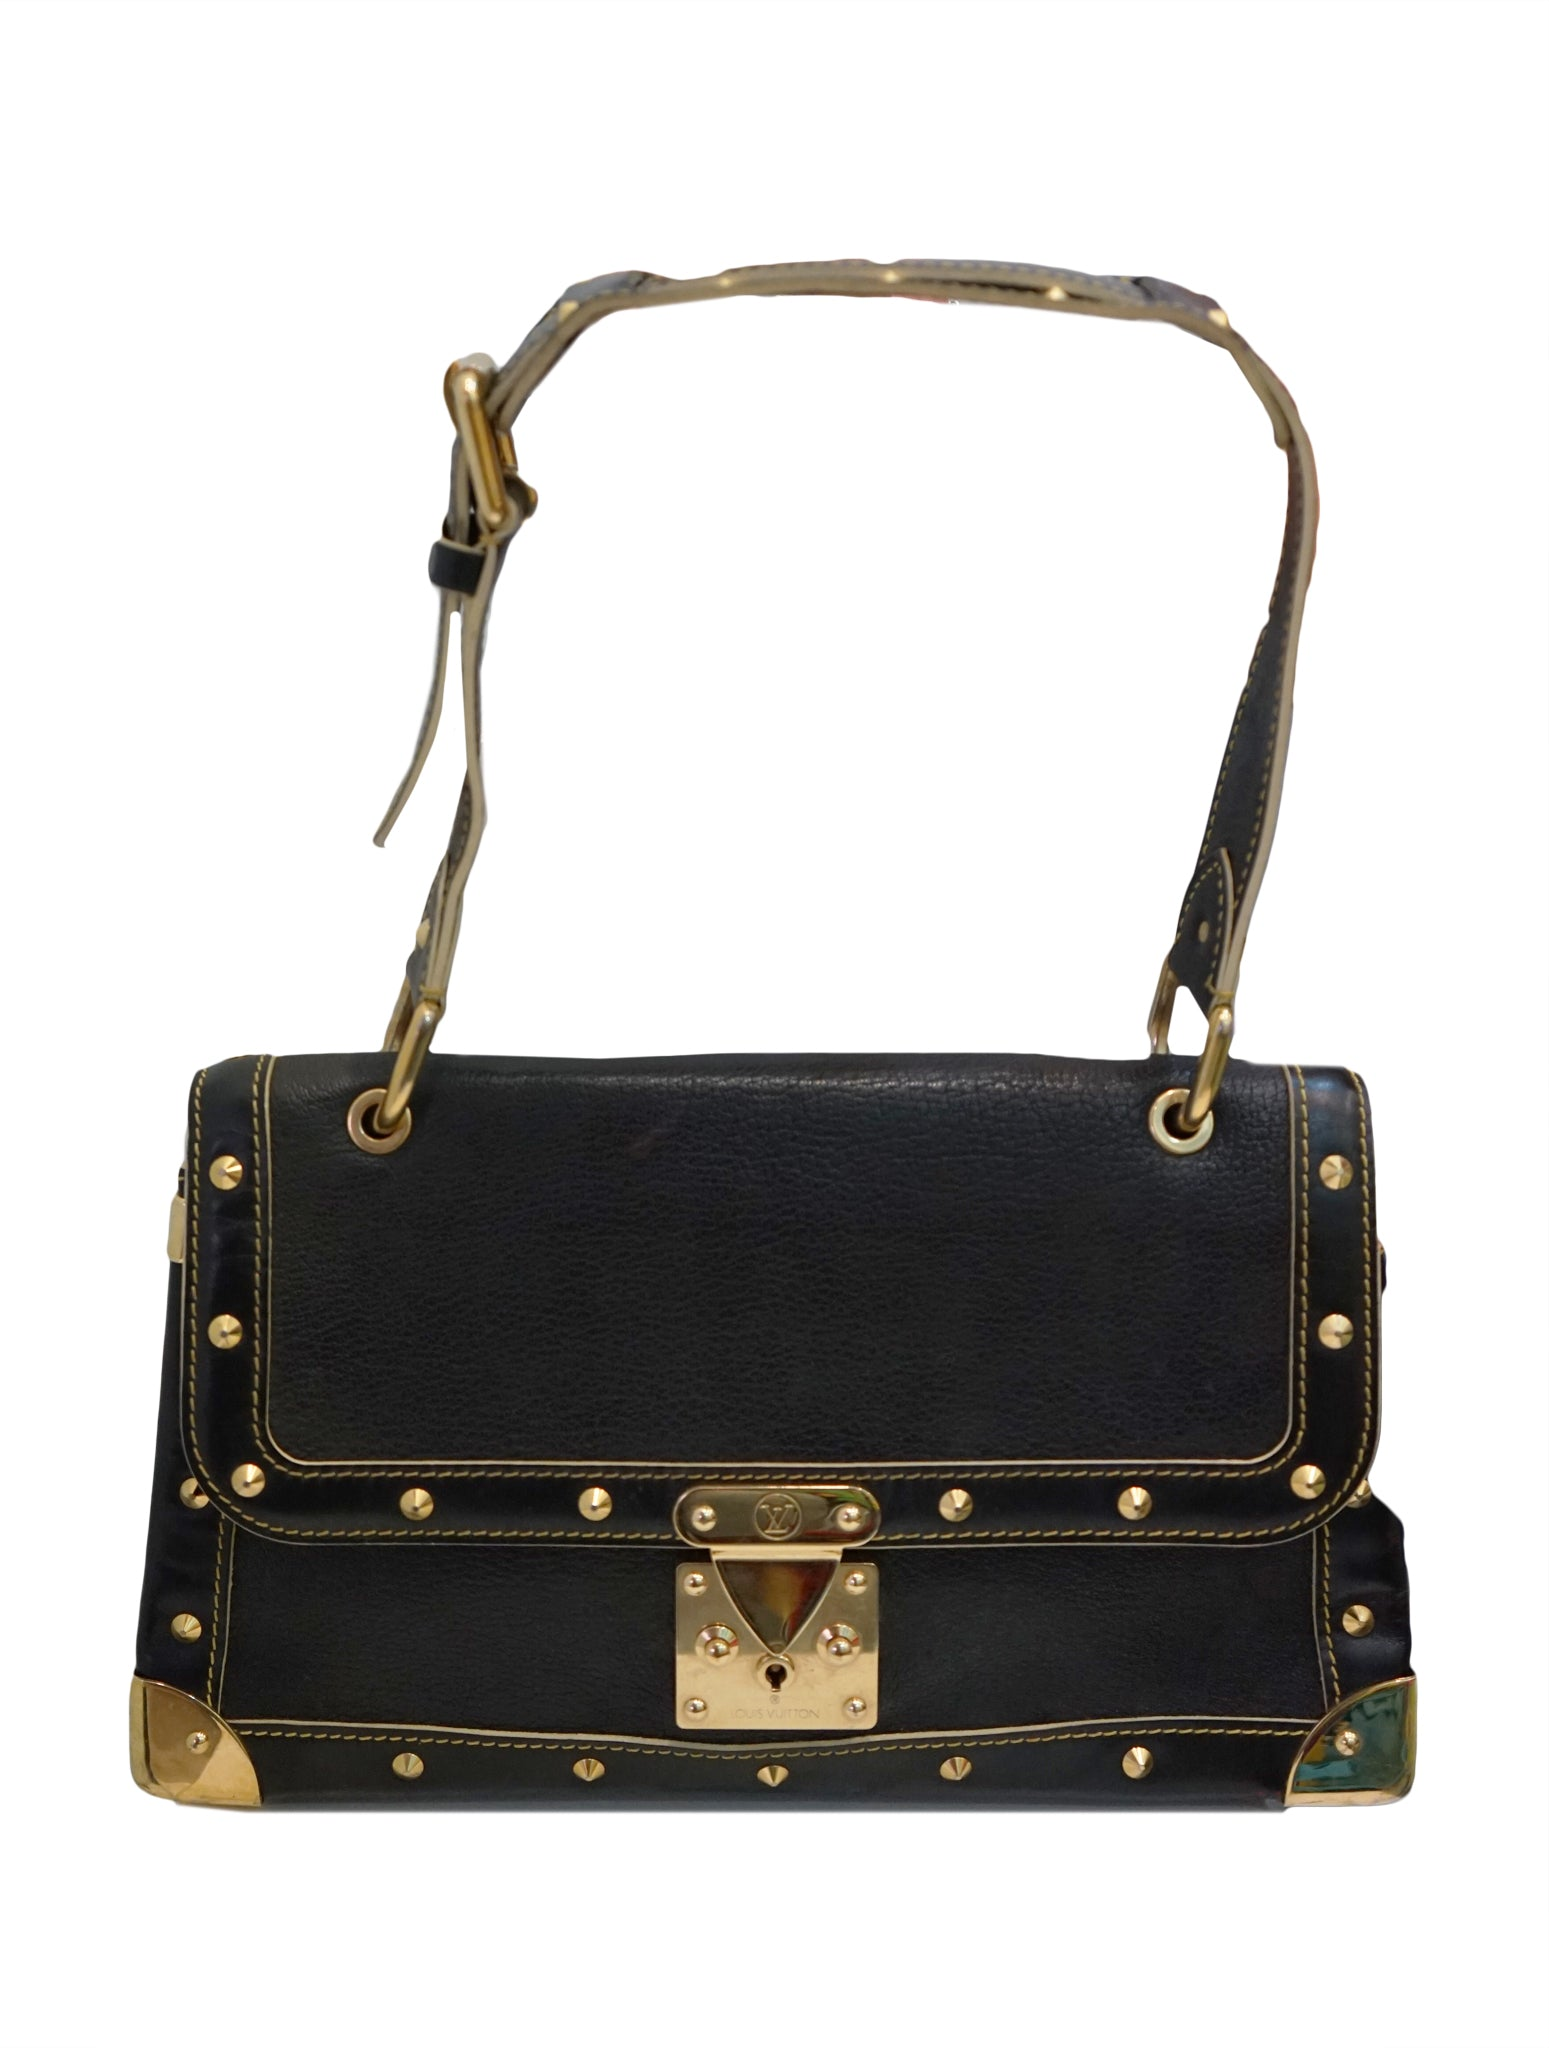 SIENNA SUHALI LEATHER LE TALENTUEUX BAG